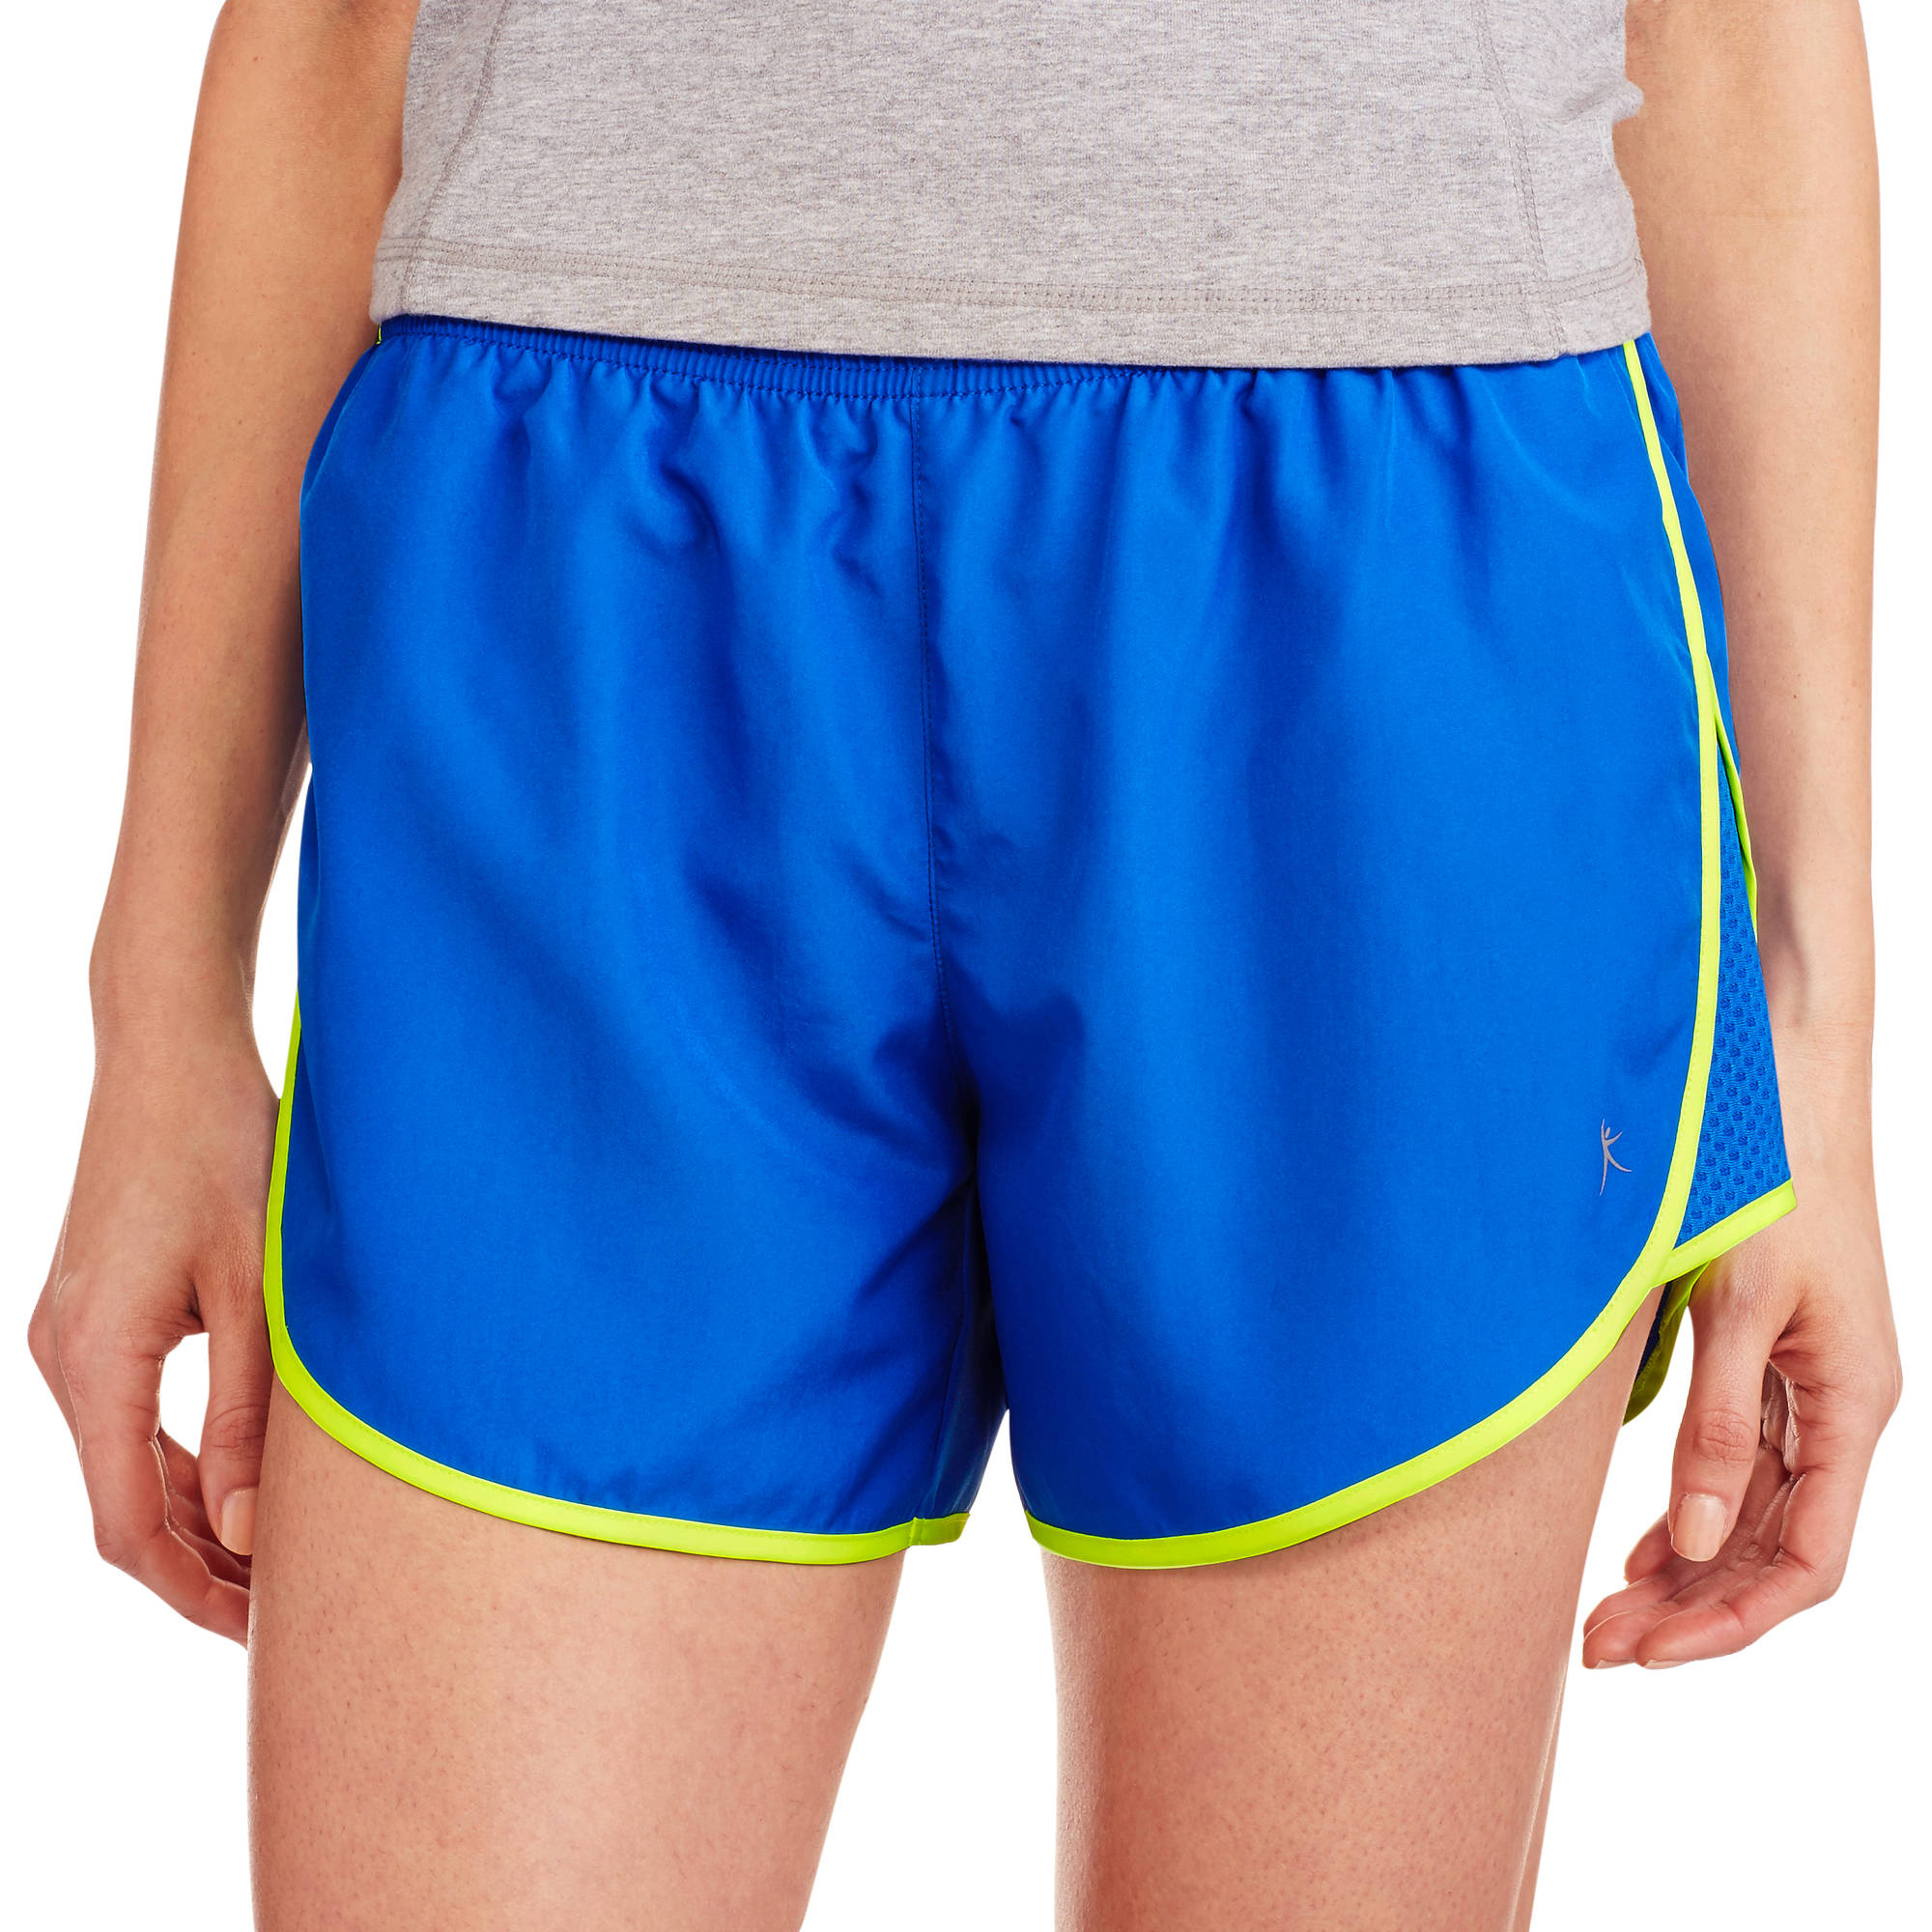 Danskin Now Women's Dolphin Woven Running Short with hidden Liner